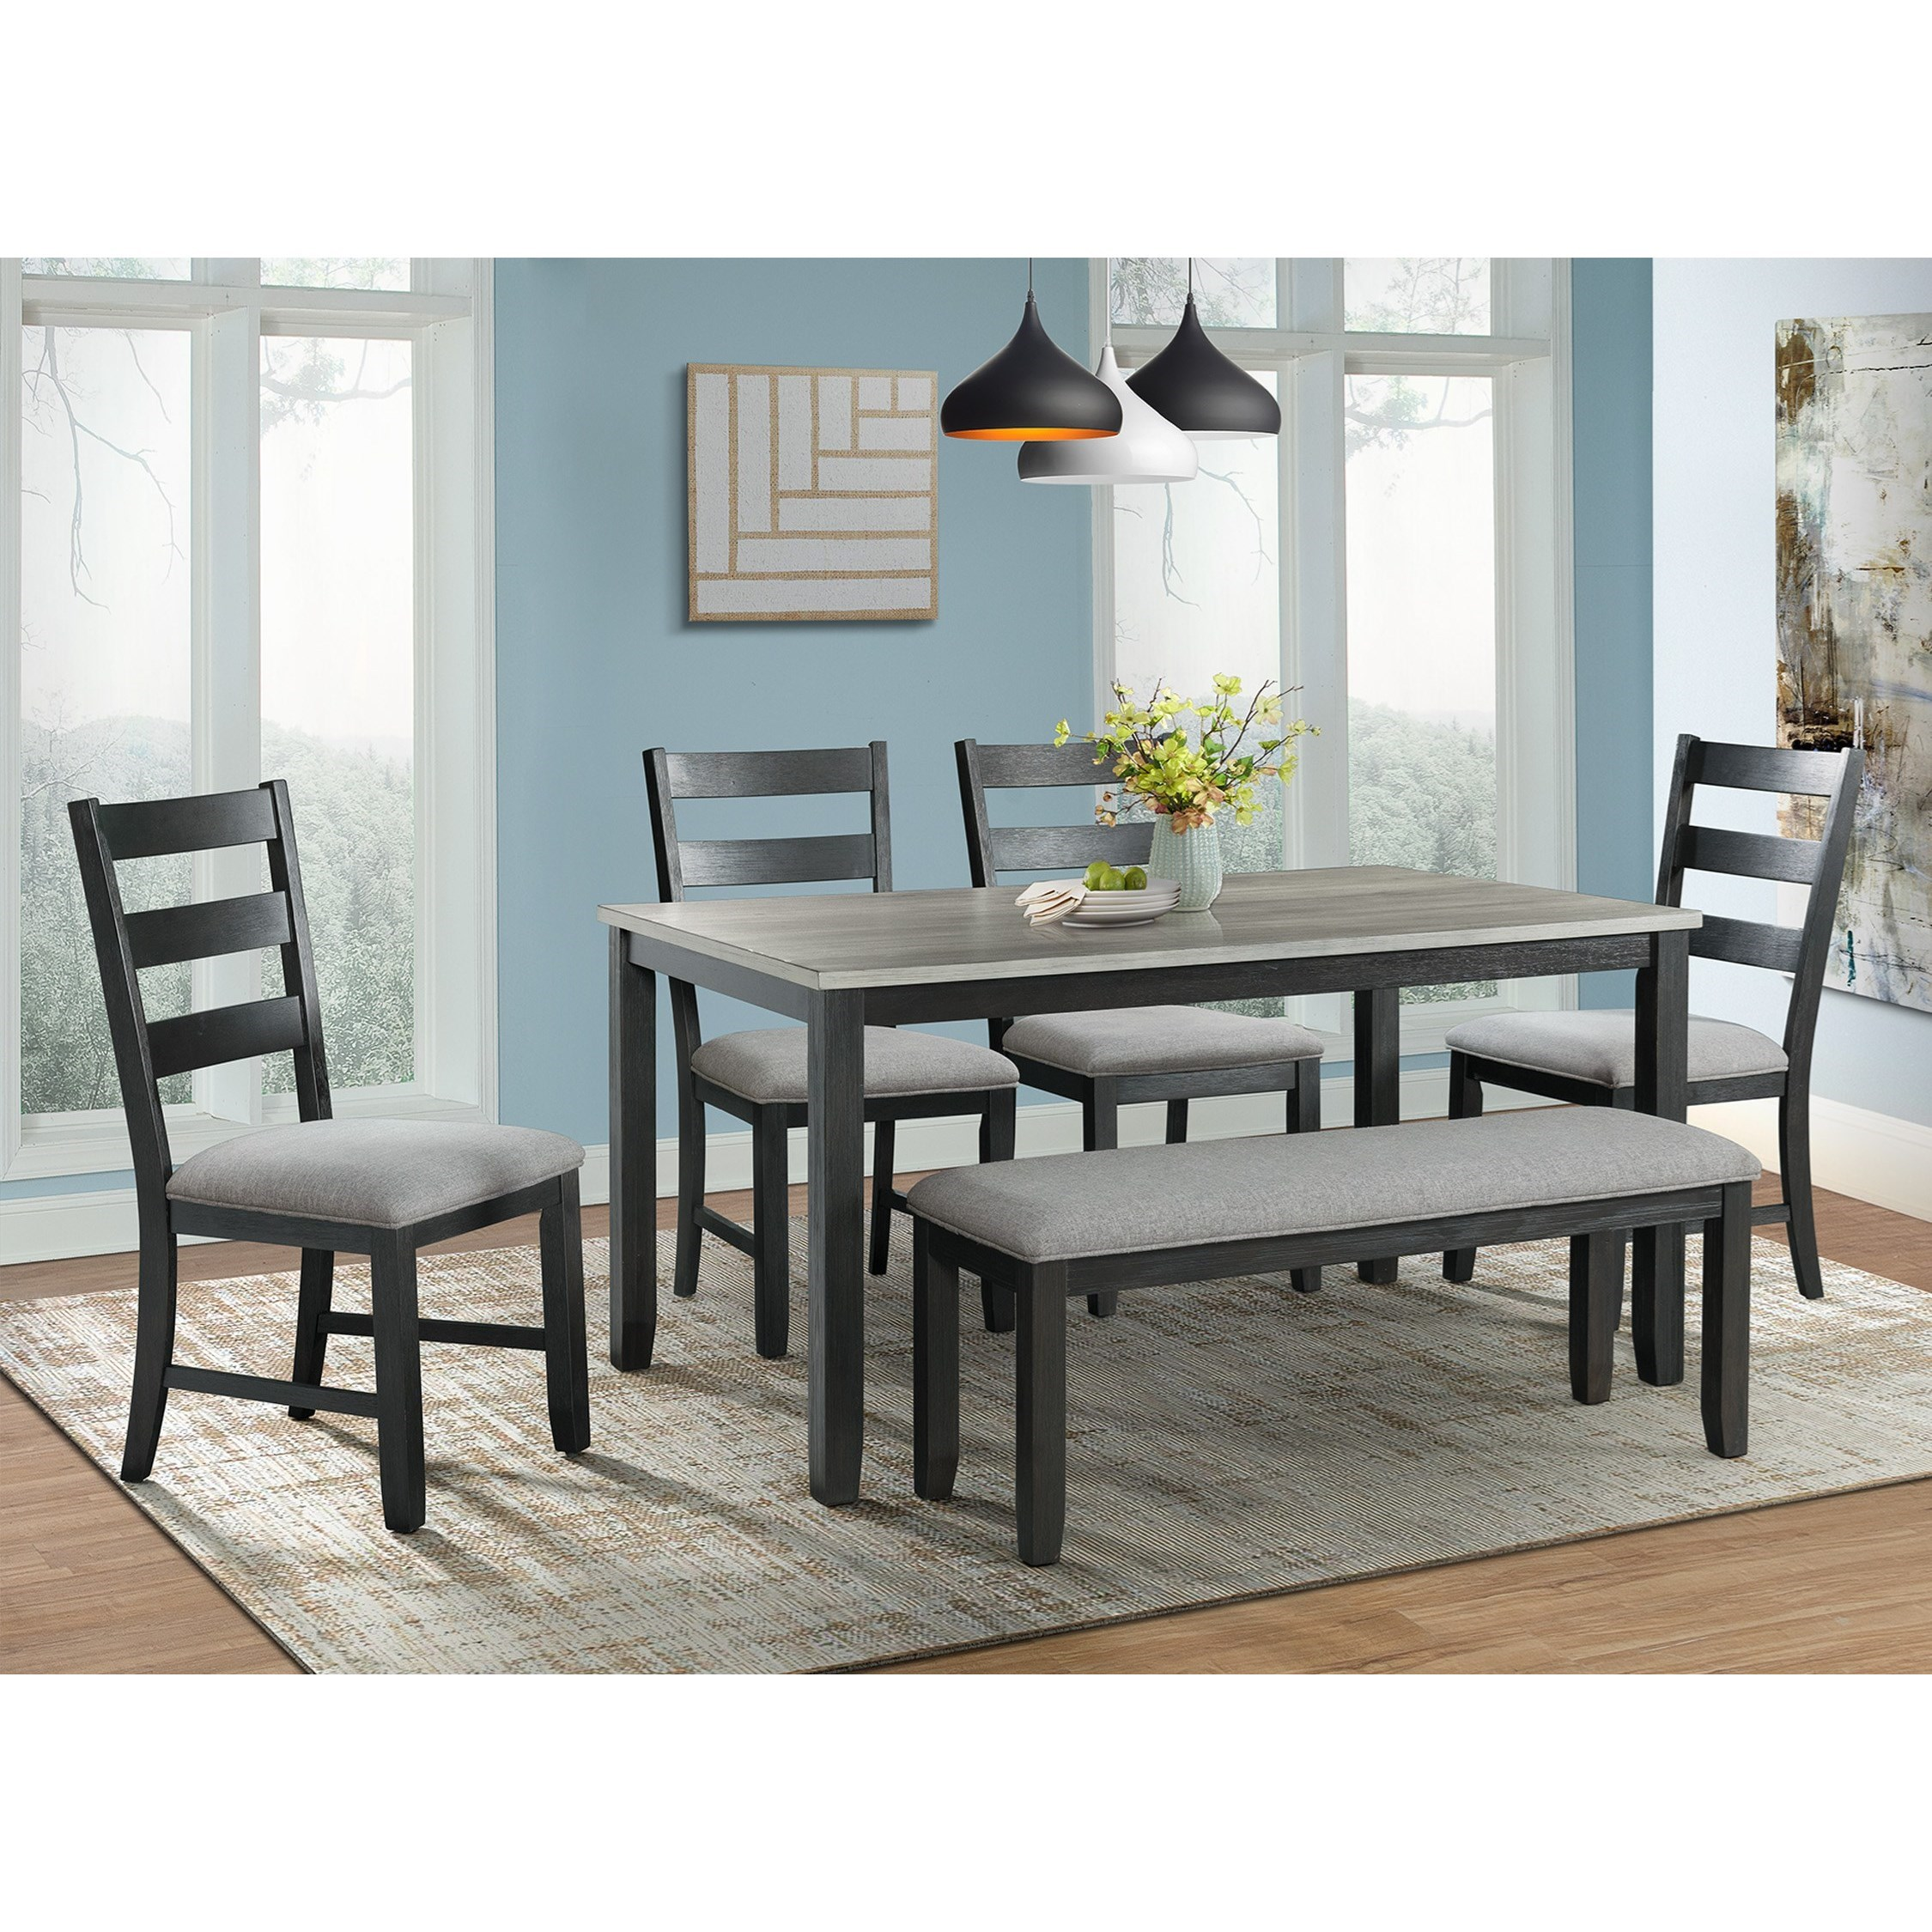 Elements International Martin Rustic Dining Table Set with Bench